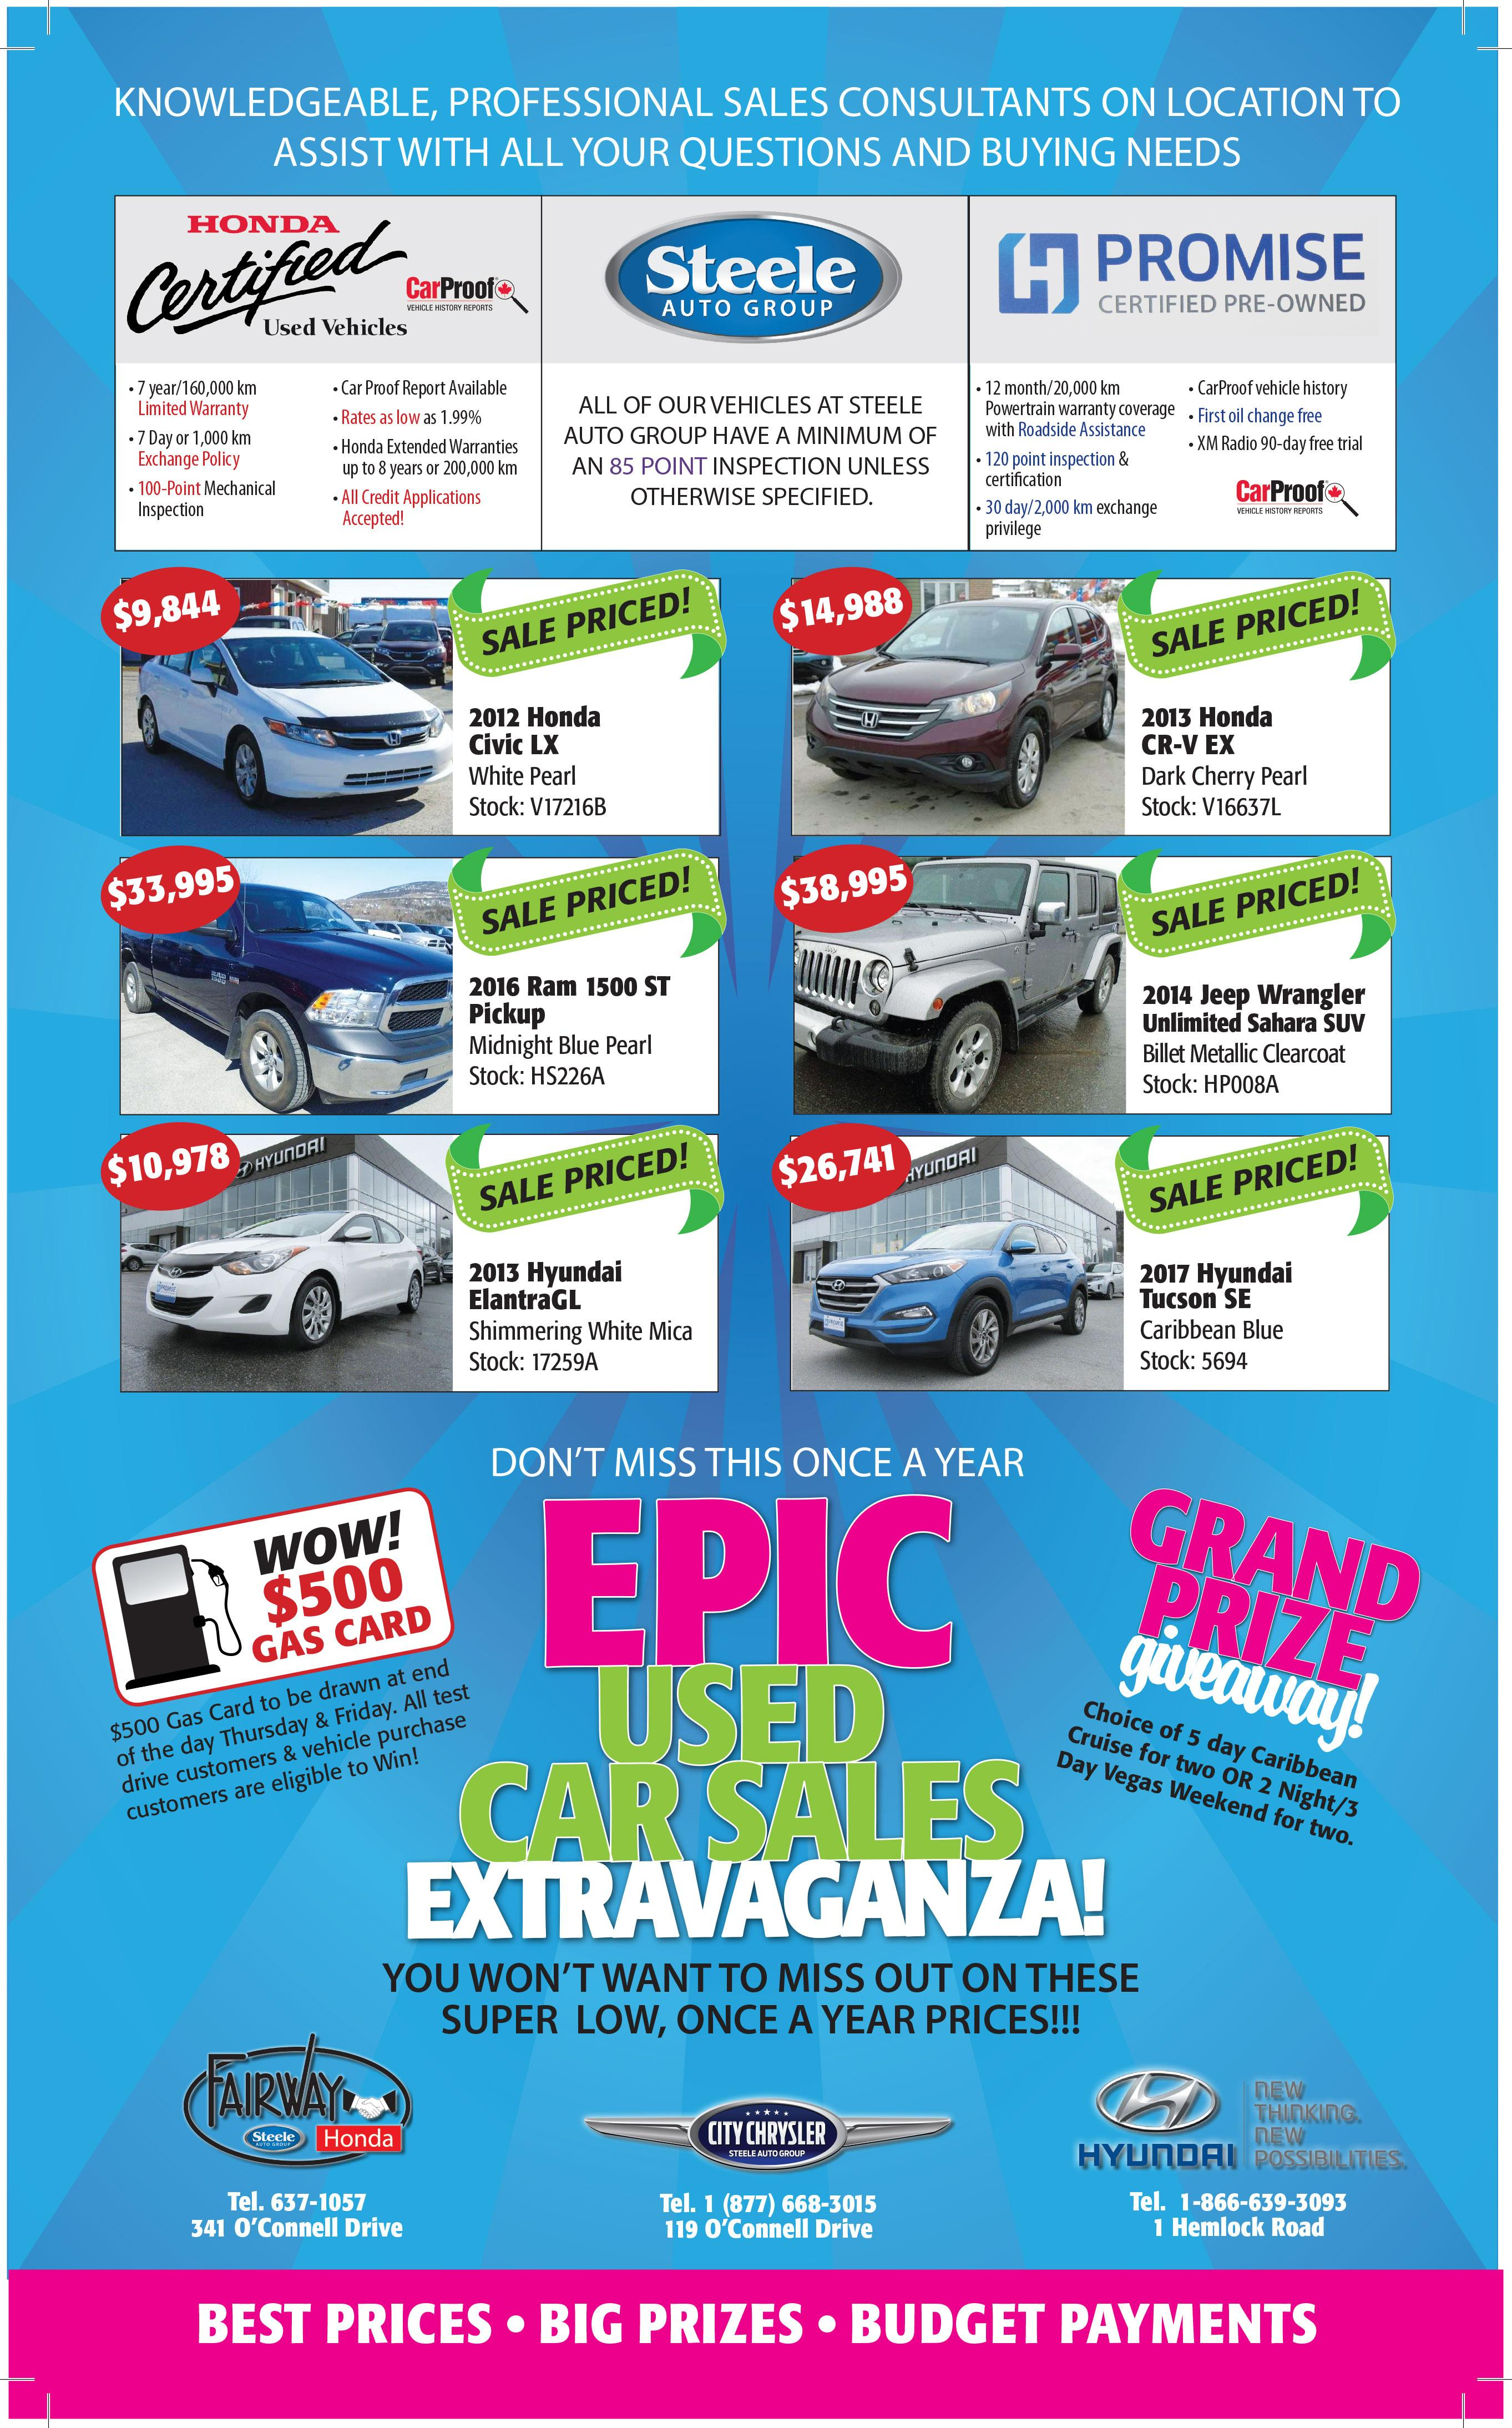 Steele Auto Group - Epic Used Car Sales Extravaganza